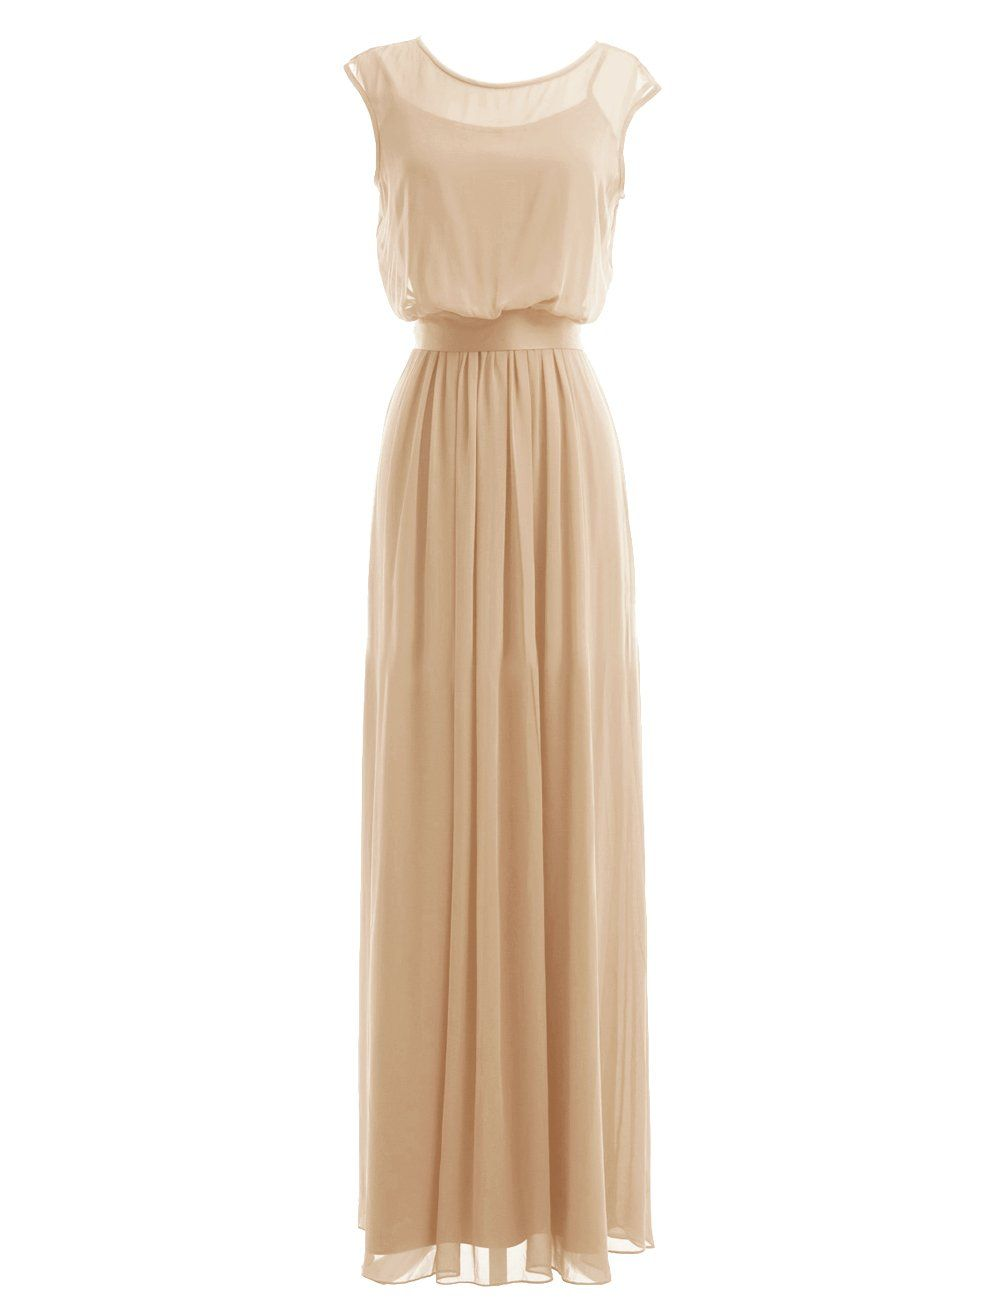 Diyouth long chiffon scoop neck bridesmaid dresses evening gowns